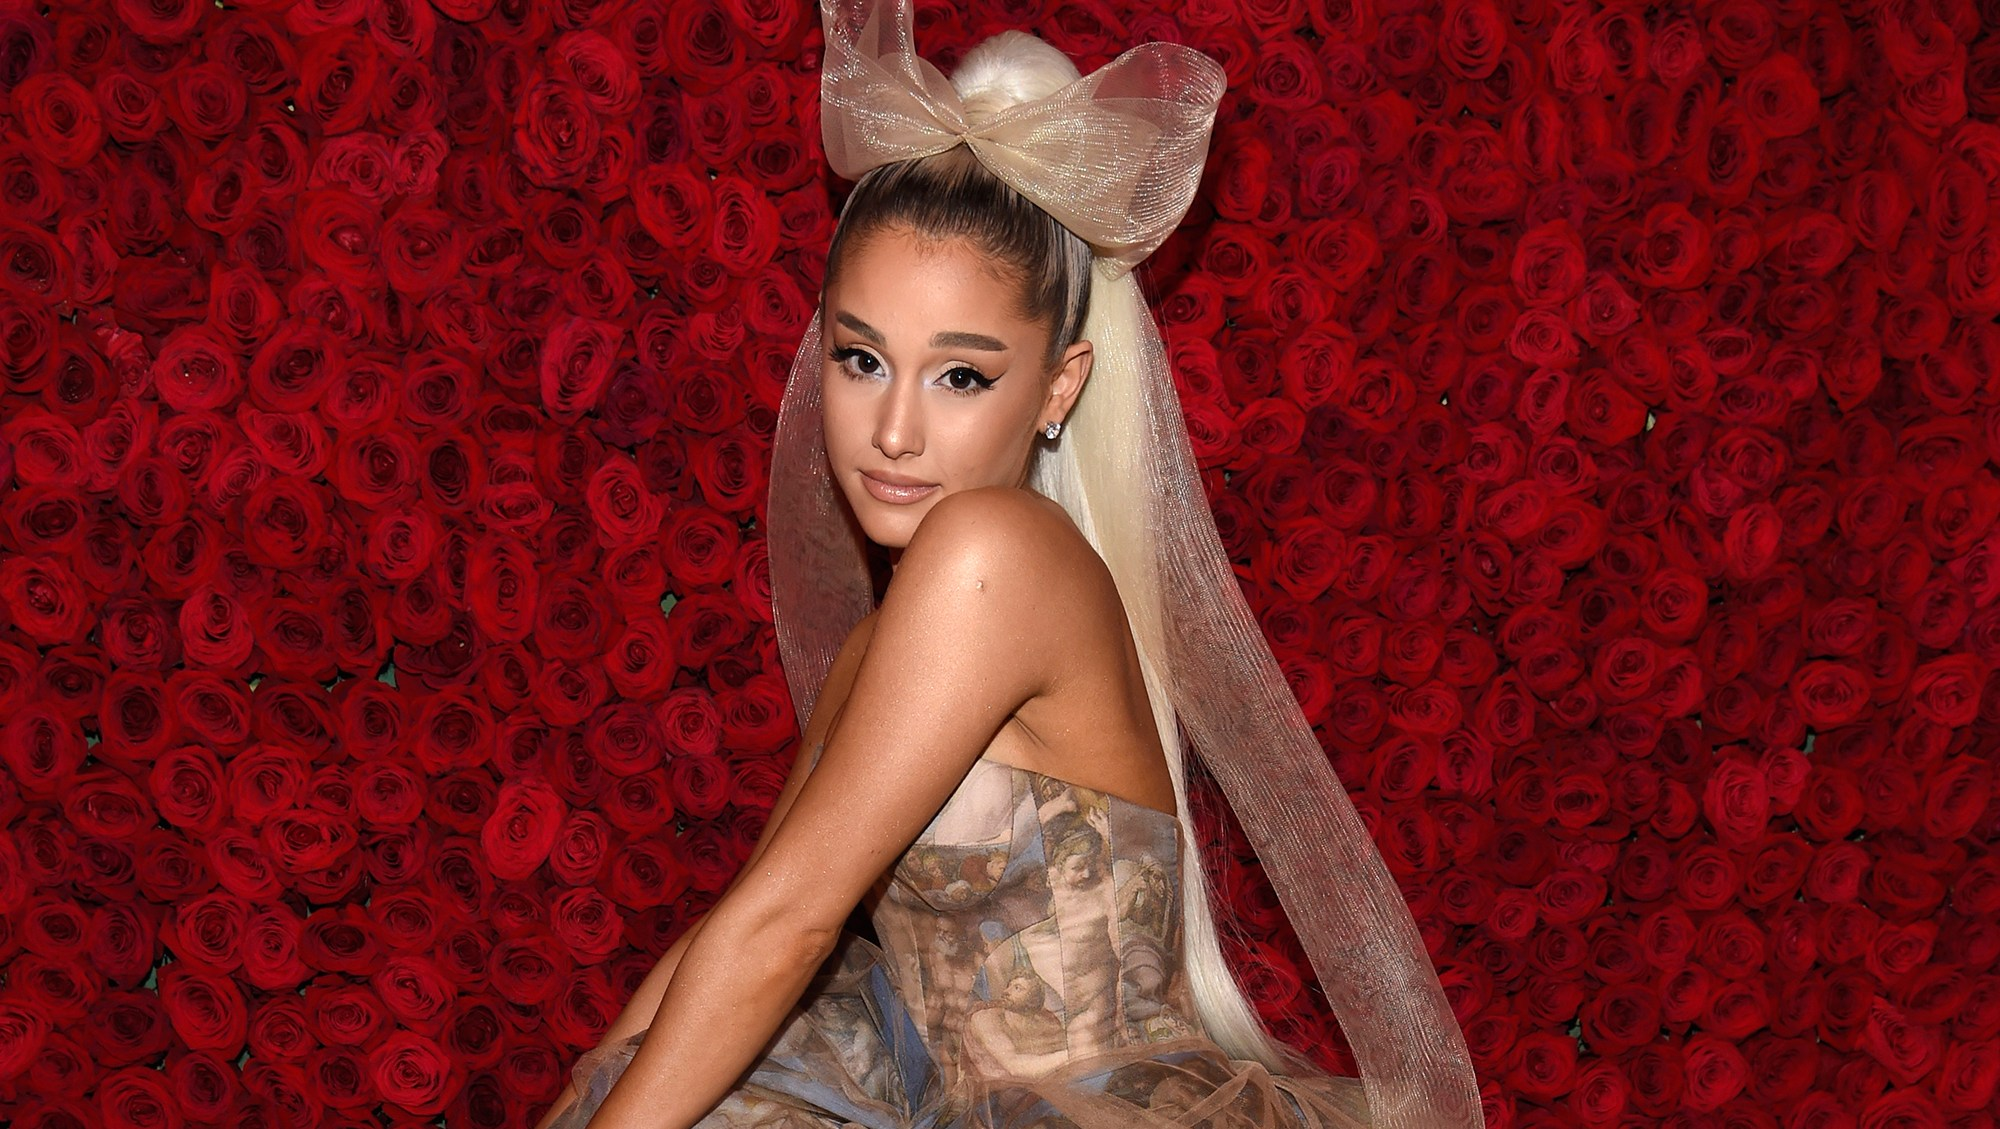 Ariana Grande's Dating History: A Timeline of Her Exes and Flings